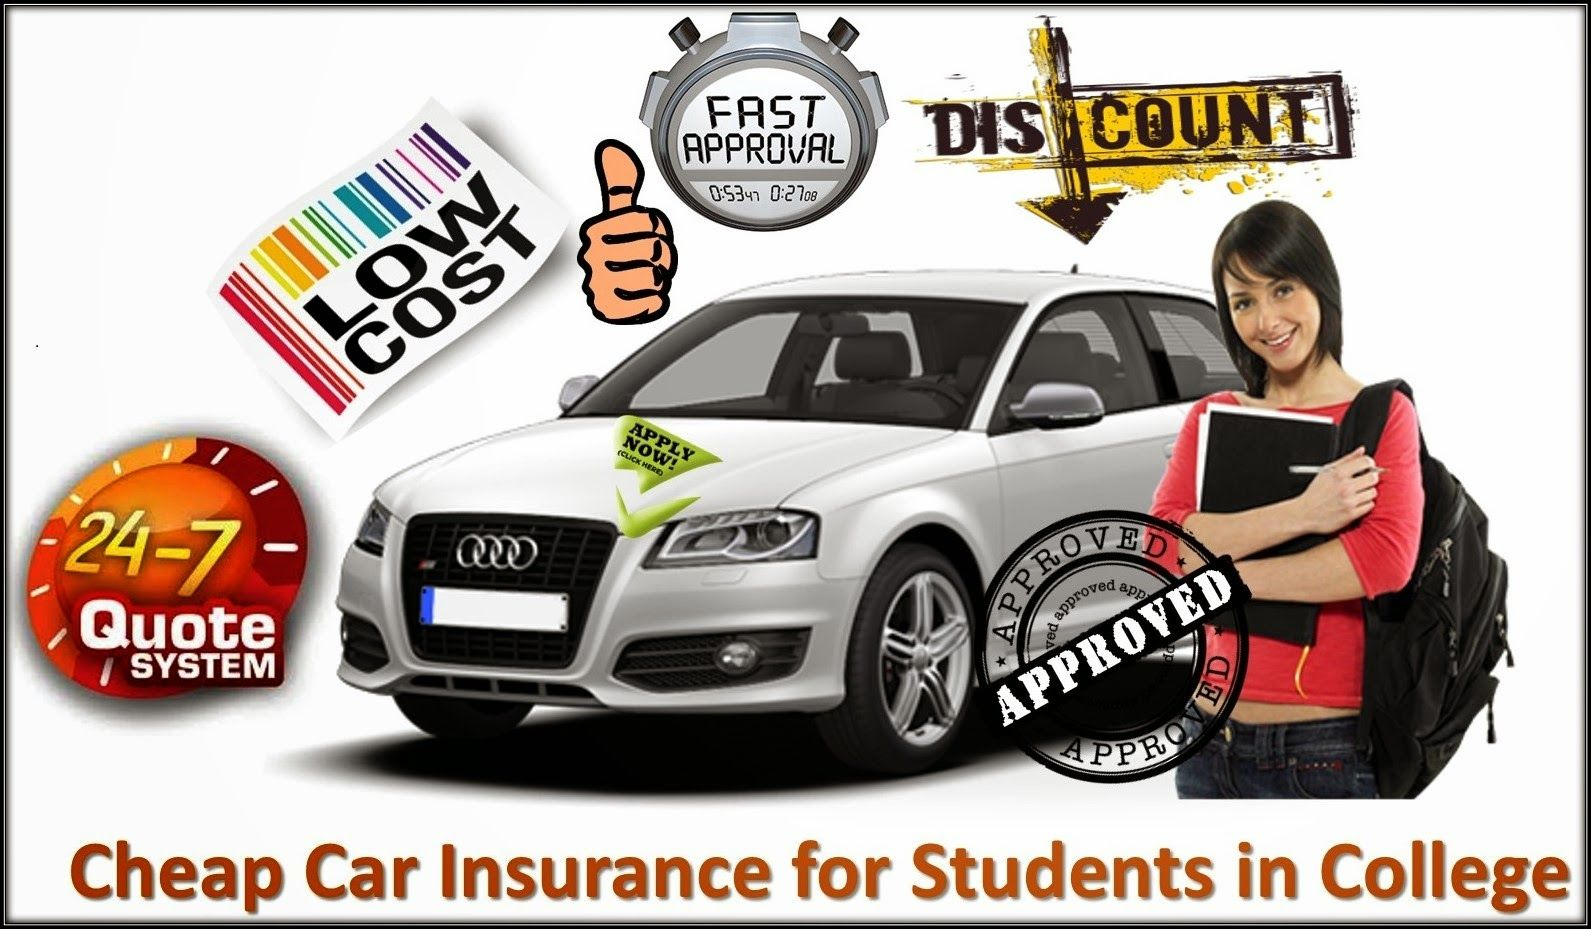 Cheap Car Insurance for Students in College, Which Makes